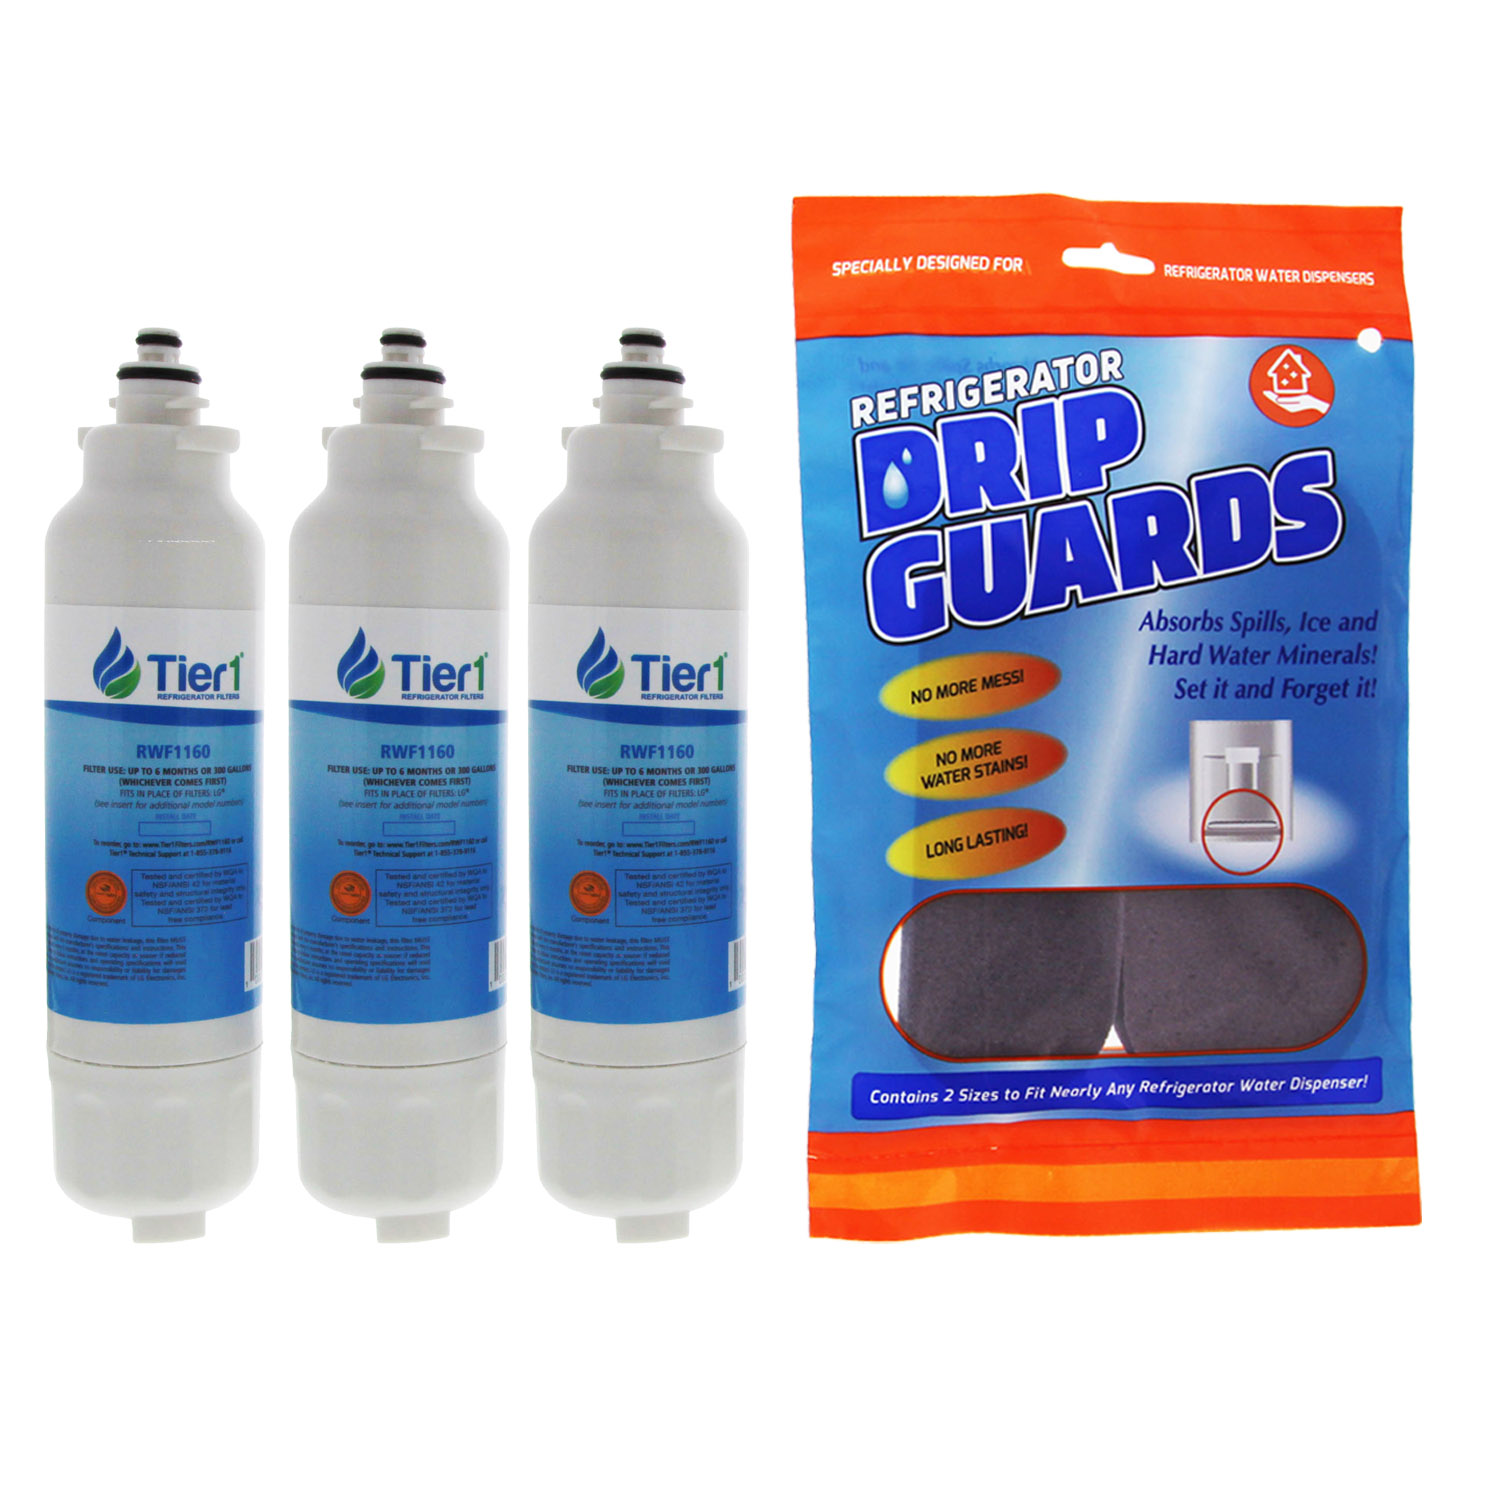 Tier1 Replacement for LG LT800P, ADQ73613401, ADQ73613402, Kenmore 9490, 46-9490, 469490, ADQ32617801 Refrigerator Water Filter (3-Pack) + DripGuard in Black